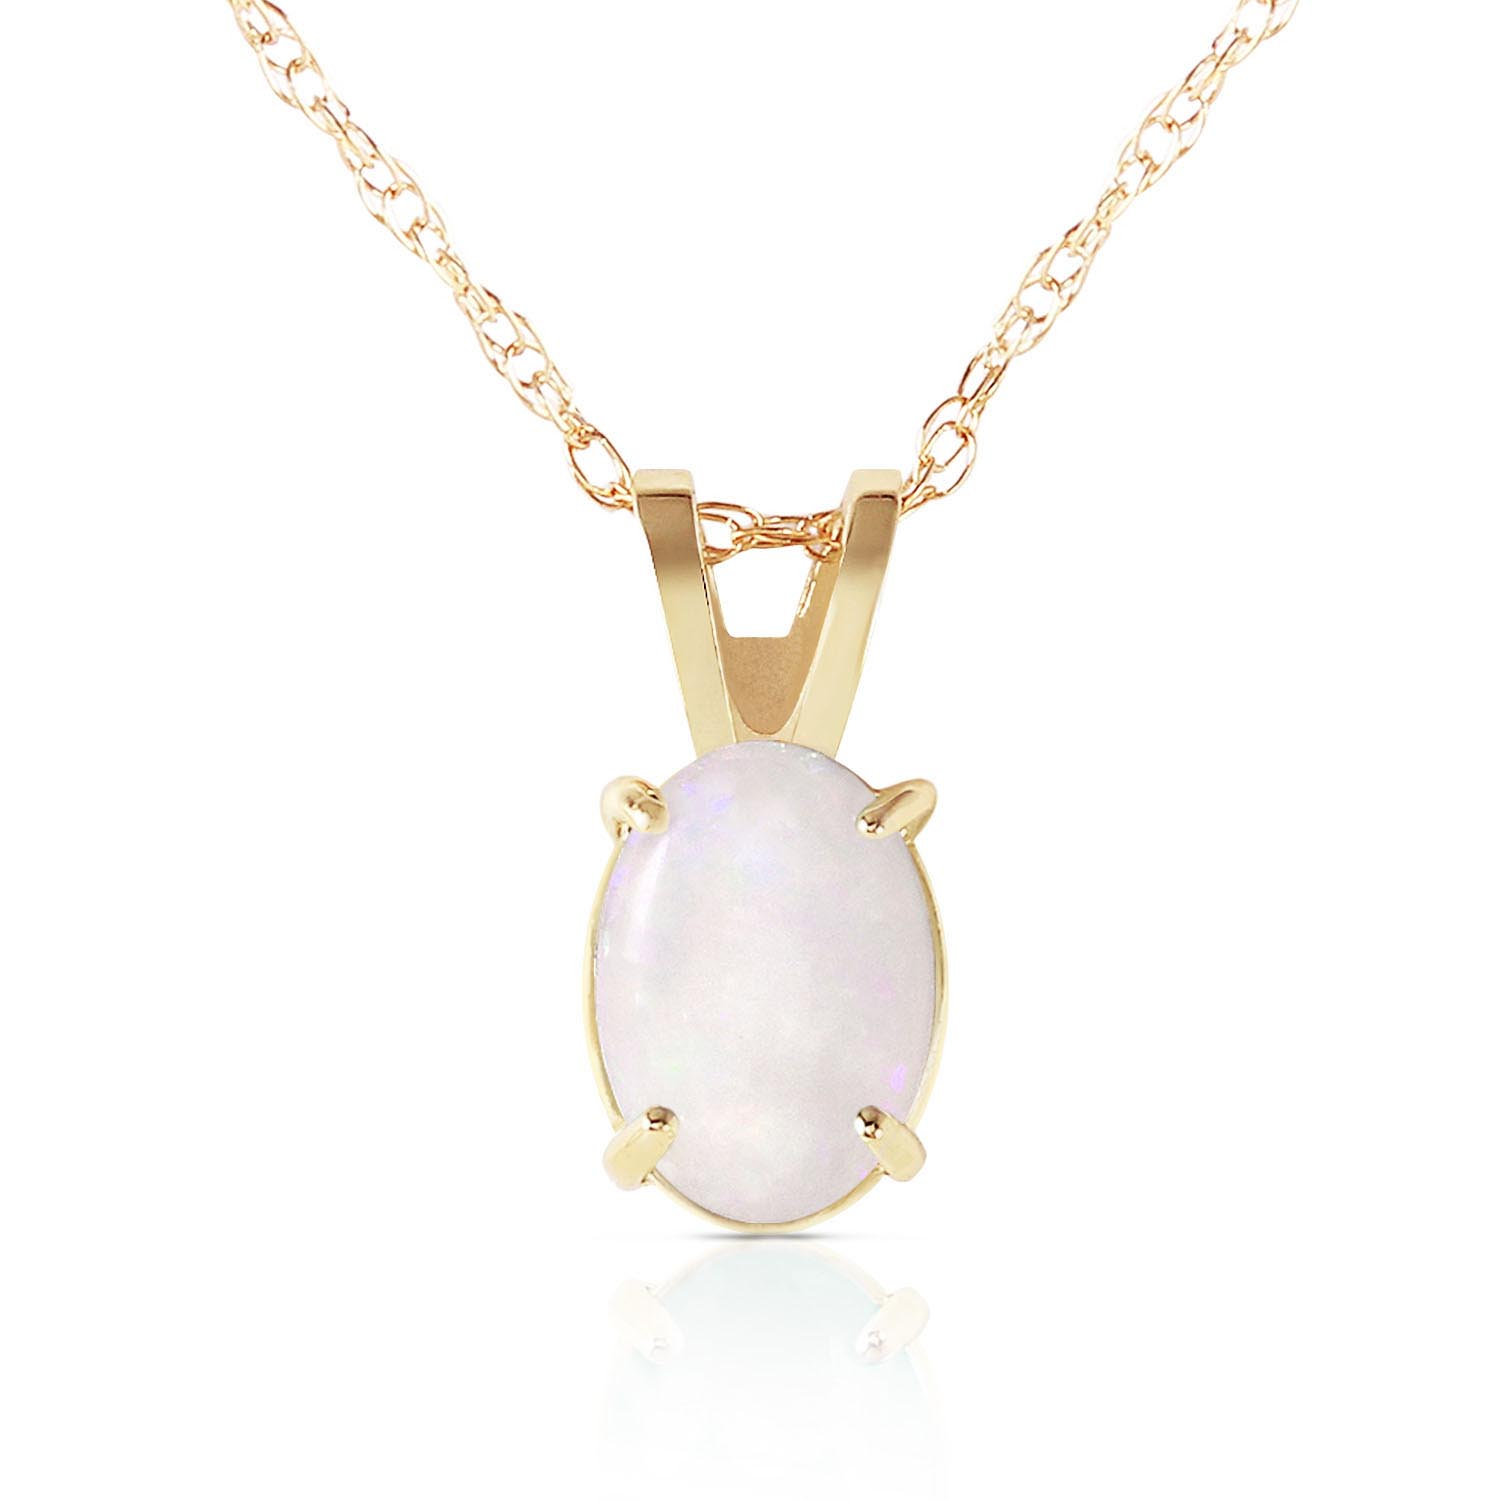 Bargain Oval Cut Opal Pendant Necklace 0.45ct in 9ct Gold Stockists